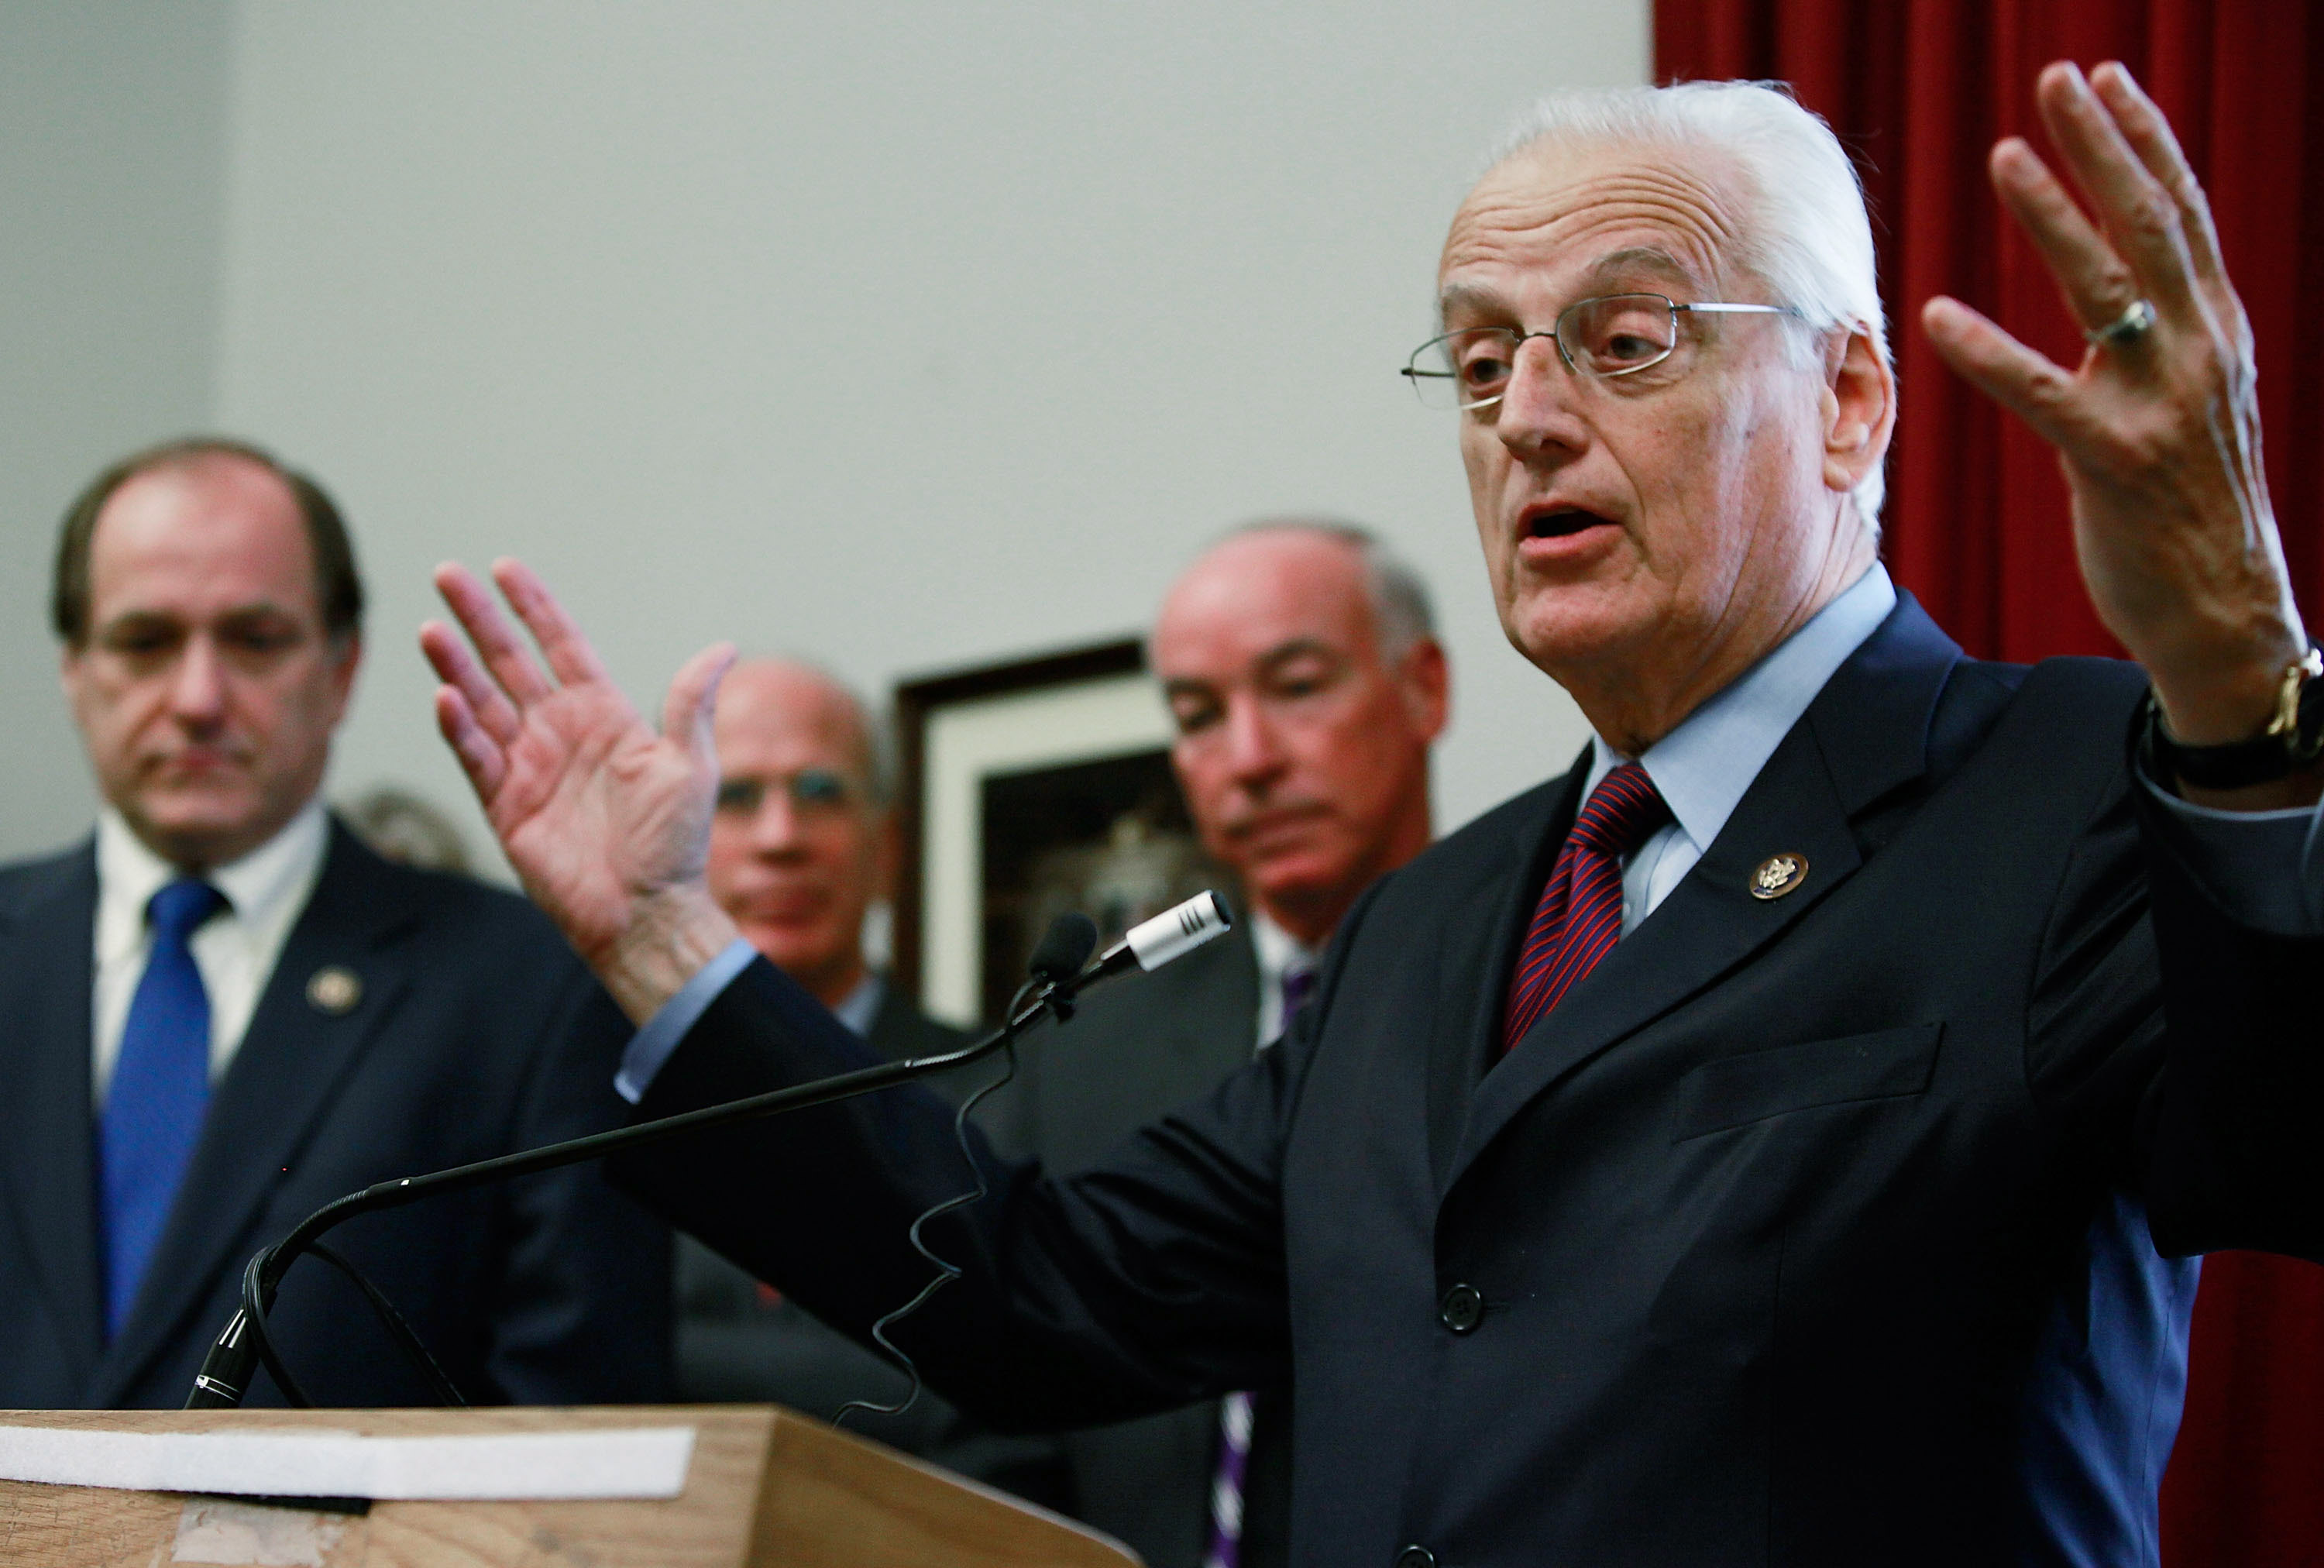 Rep. Bill Pascrell, Jr. (D-NJ)(R), speaks about high ticket prices while flanked by Rep. Michael E. Capuano (D-MA)(L), Rep. Peter Welch (D-VT)(2nd-L) and Rep. Joe Courtney (D-CT)(2nd-R) during a news conference on Capitol Hill, December 16, 2009 in Washington, DC. (Photo by Mark Wilson/Getty Images)